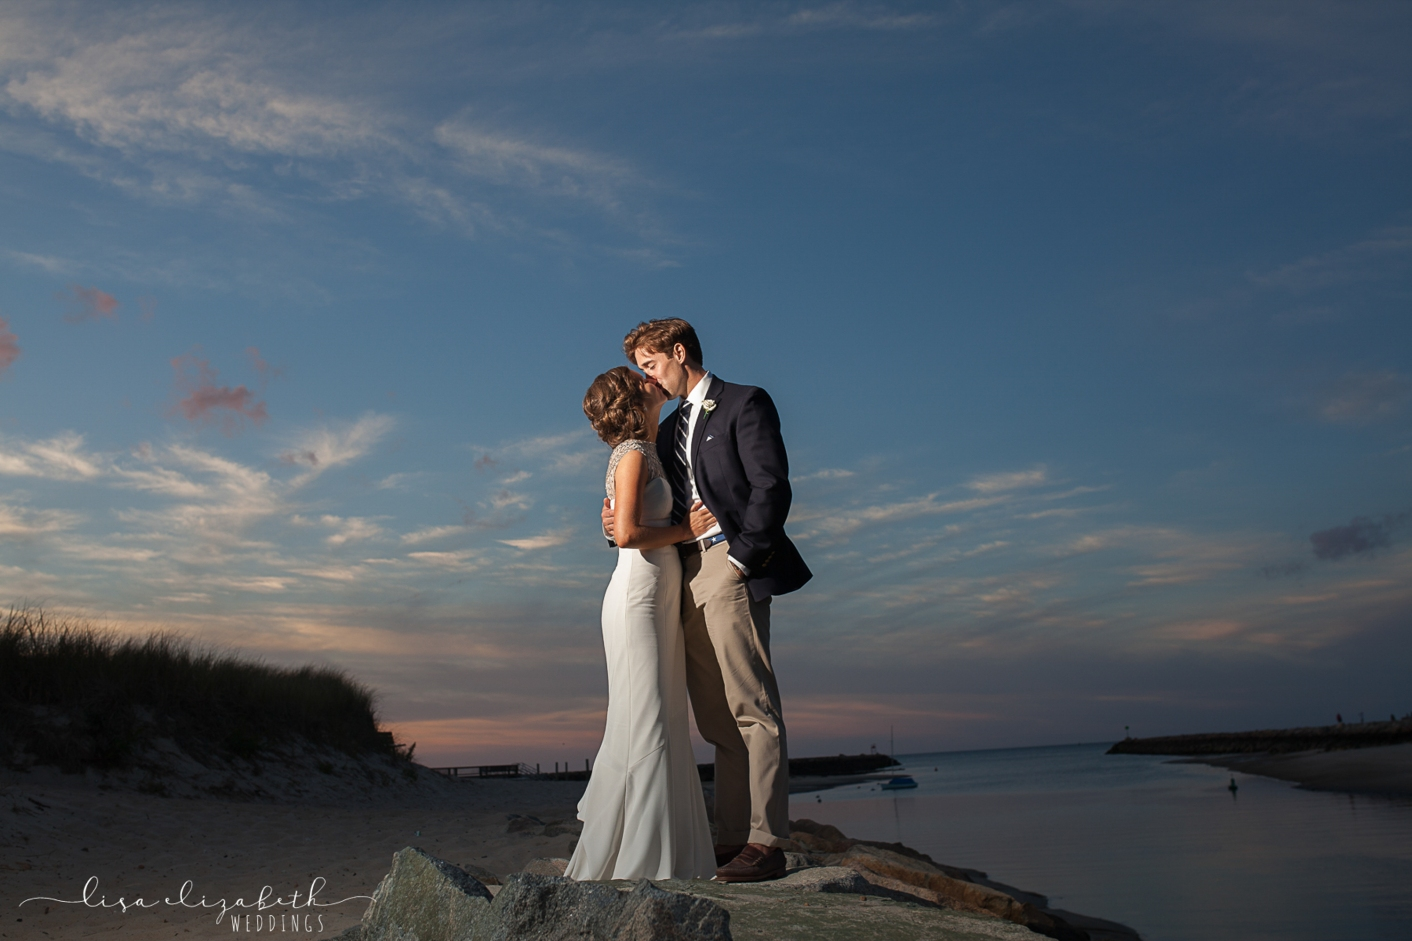 cape-cod-wedding-photographer-lisa-elizabeth-images-19-of-19